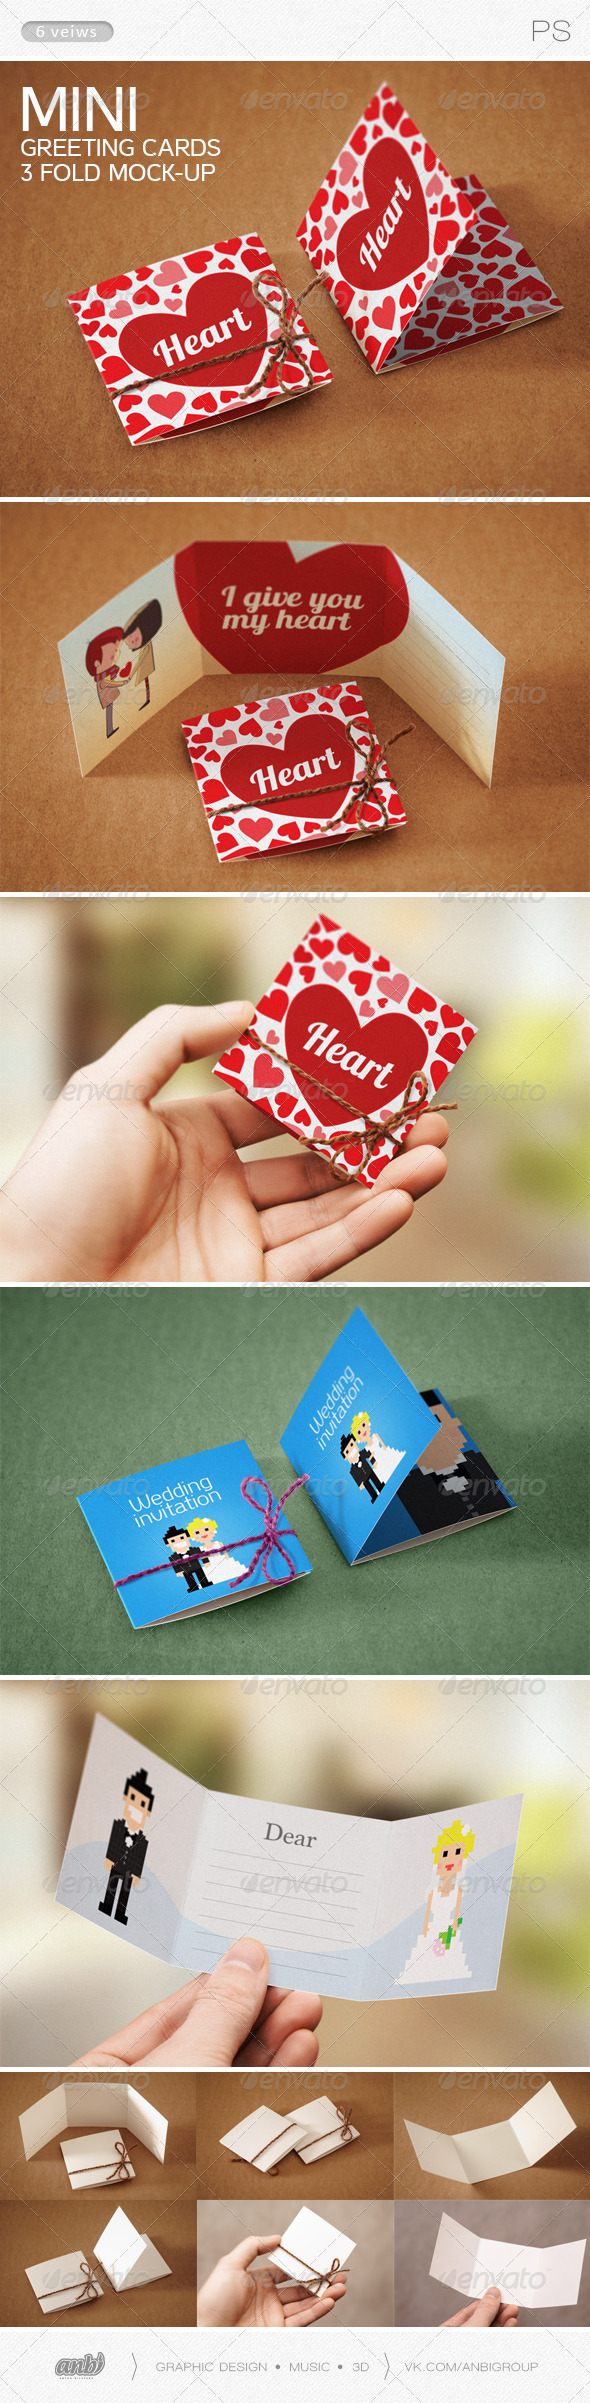 GraphicRiver Mini Greeting Cards 3 fold Mock-up 6529886